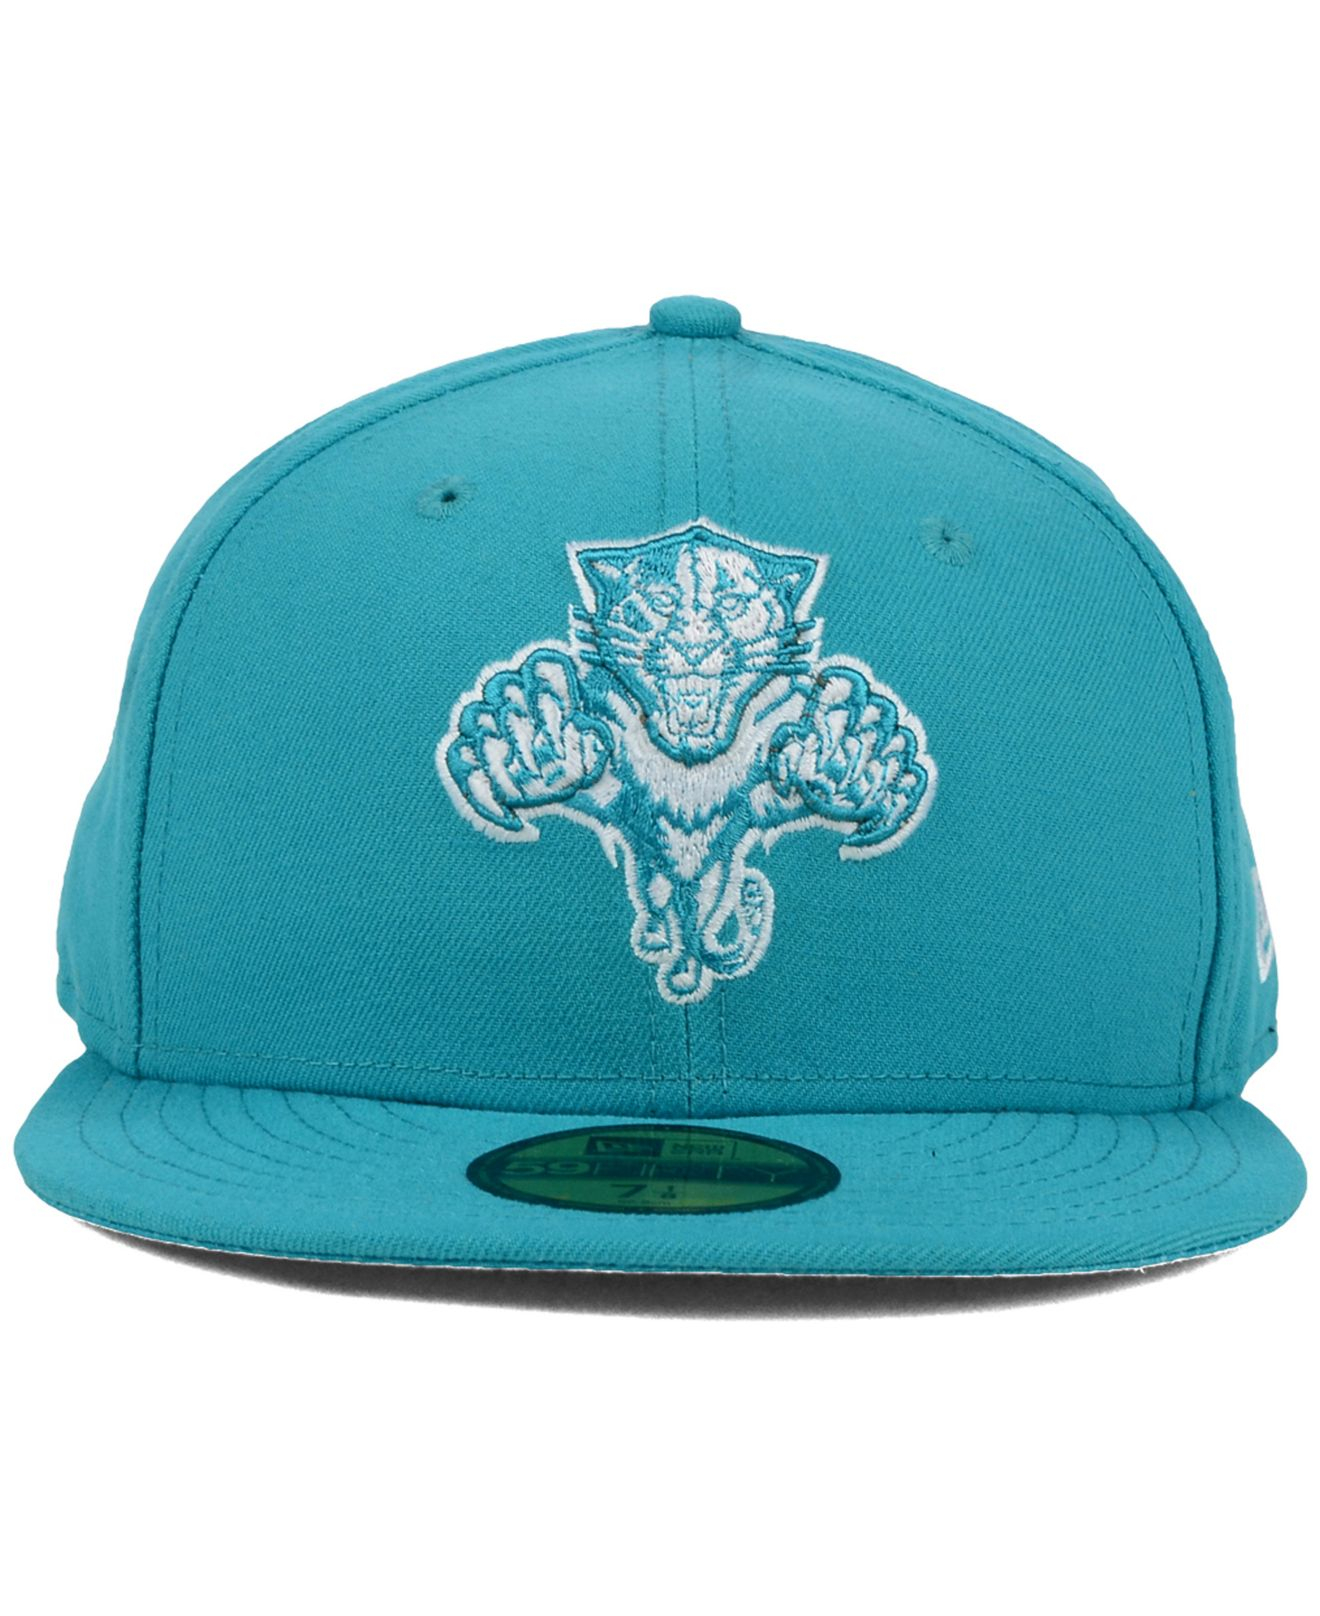 check out b6e0a 6b965 KTZ Florida Panthers C-dub 59fifty Cap in Blue for Men - Lyst